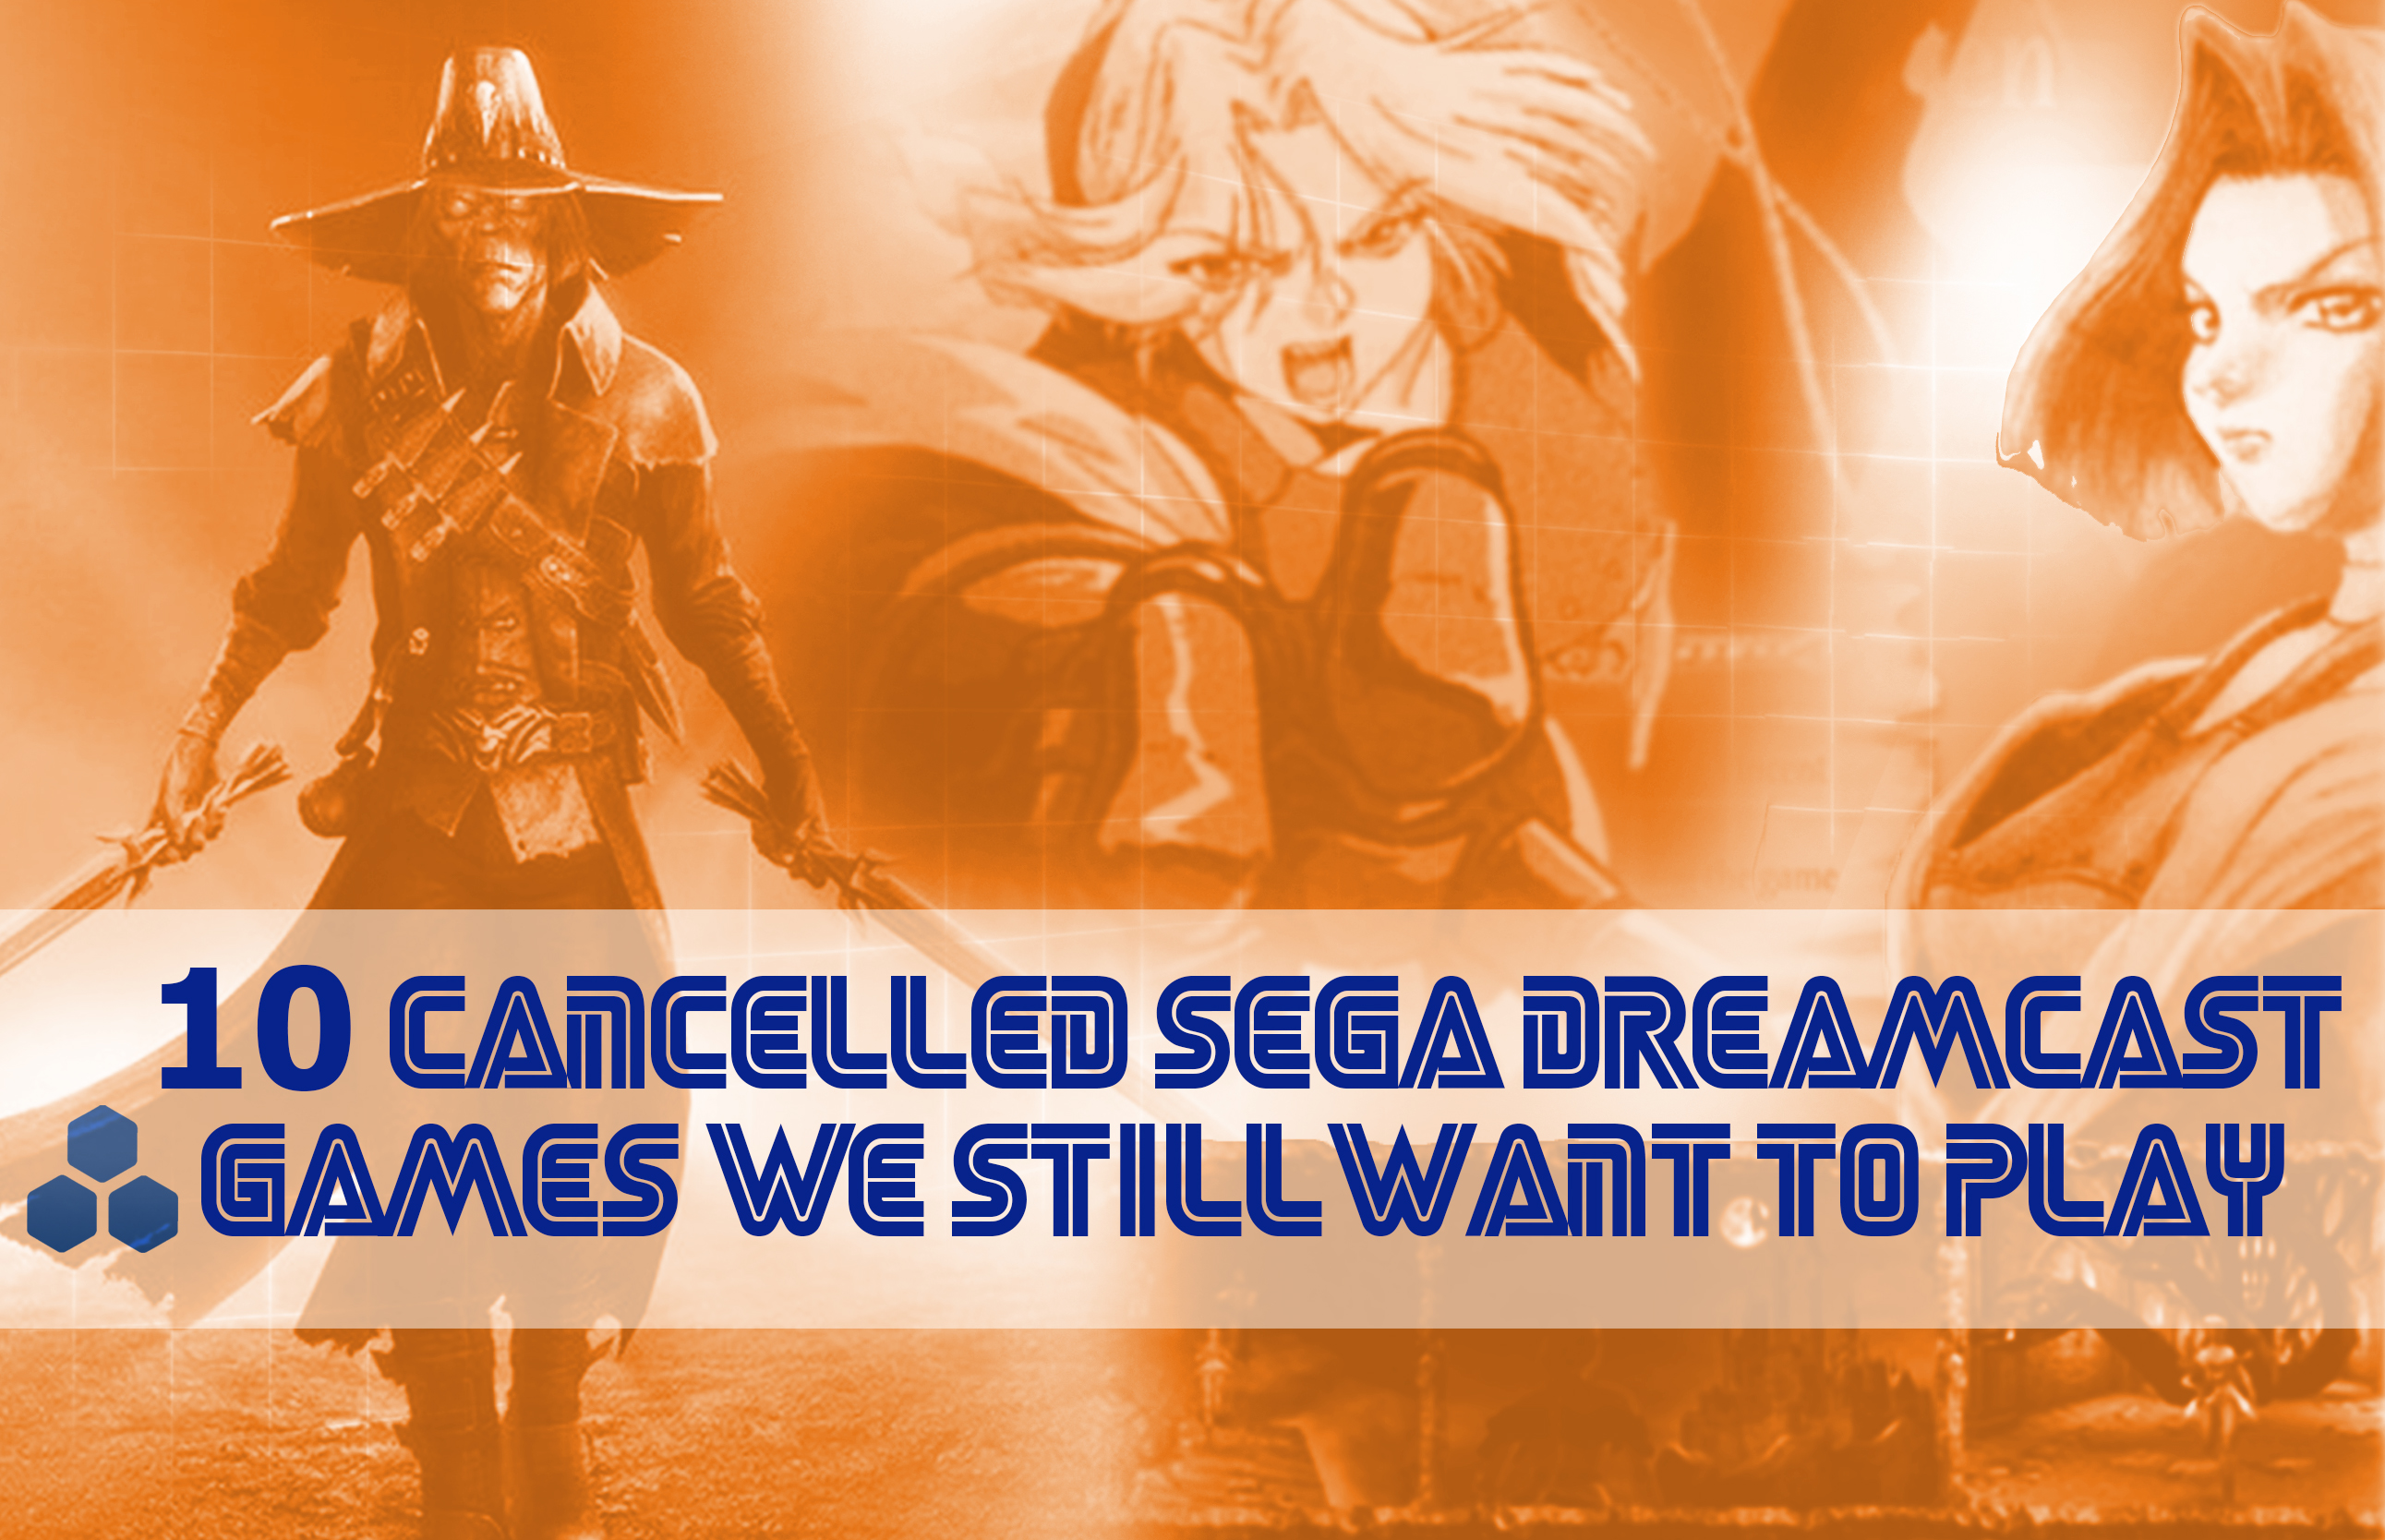 Cancelled Dreamcast games